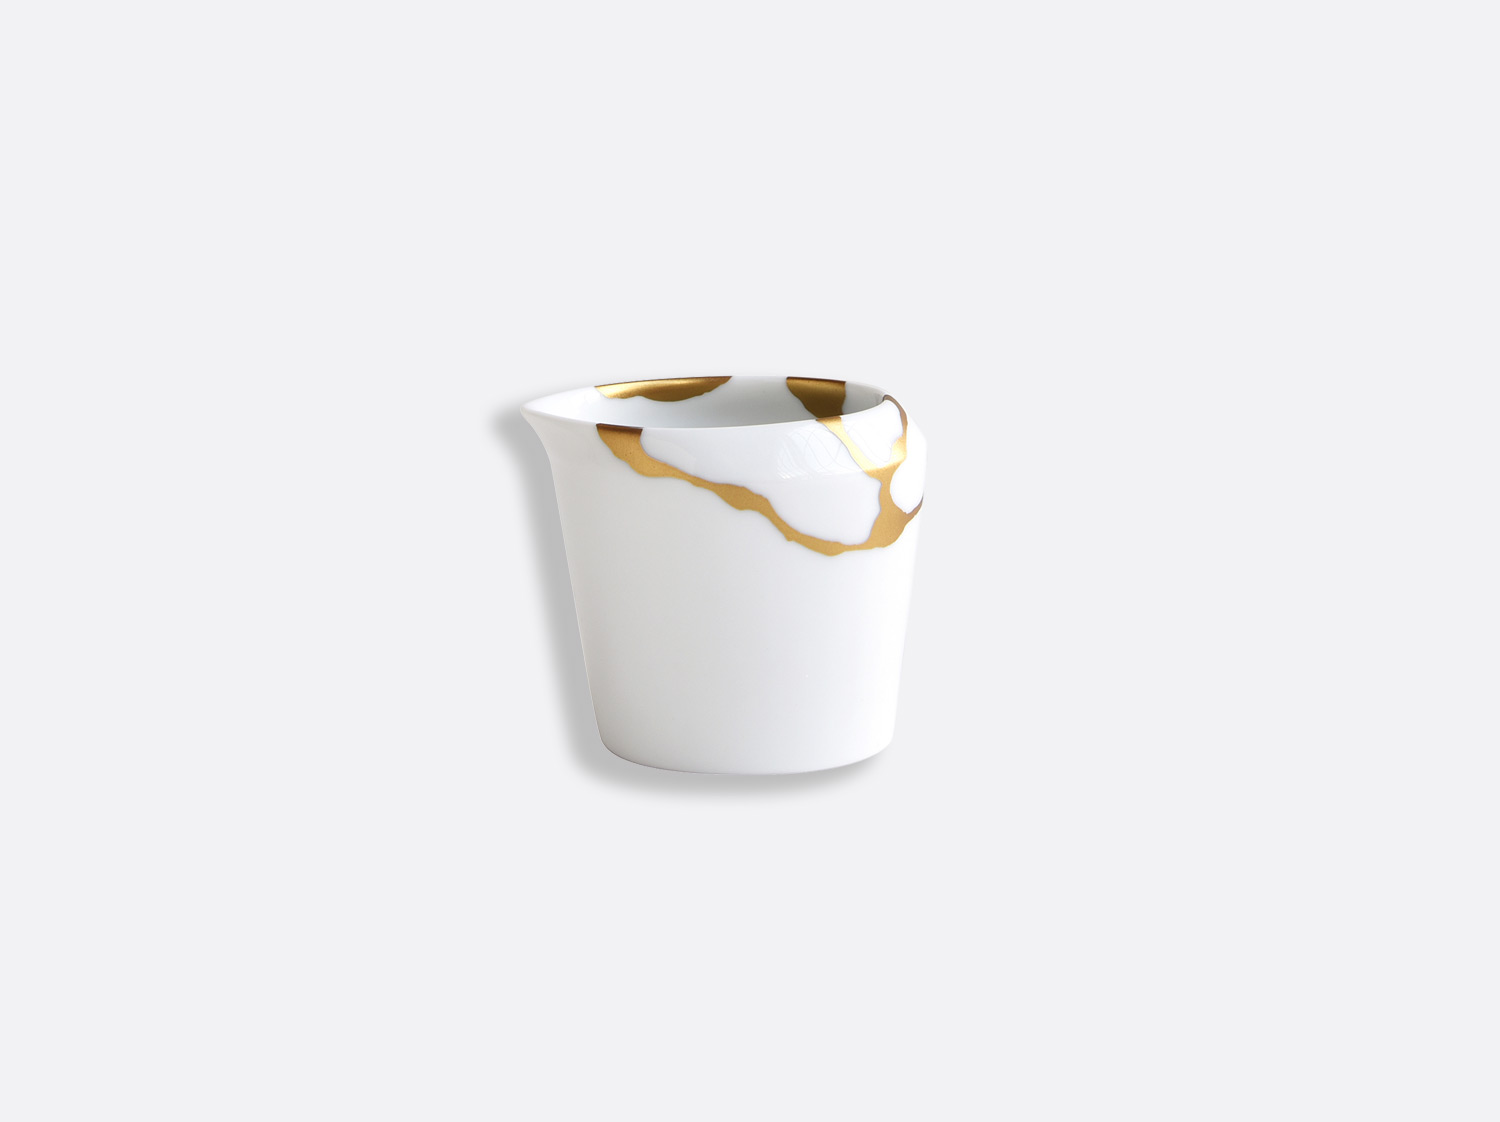 Crémier 8 cl en porcelaine de la collection Kintsugi Bernardaud